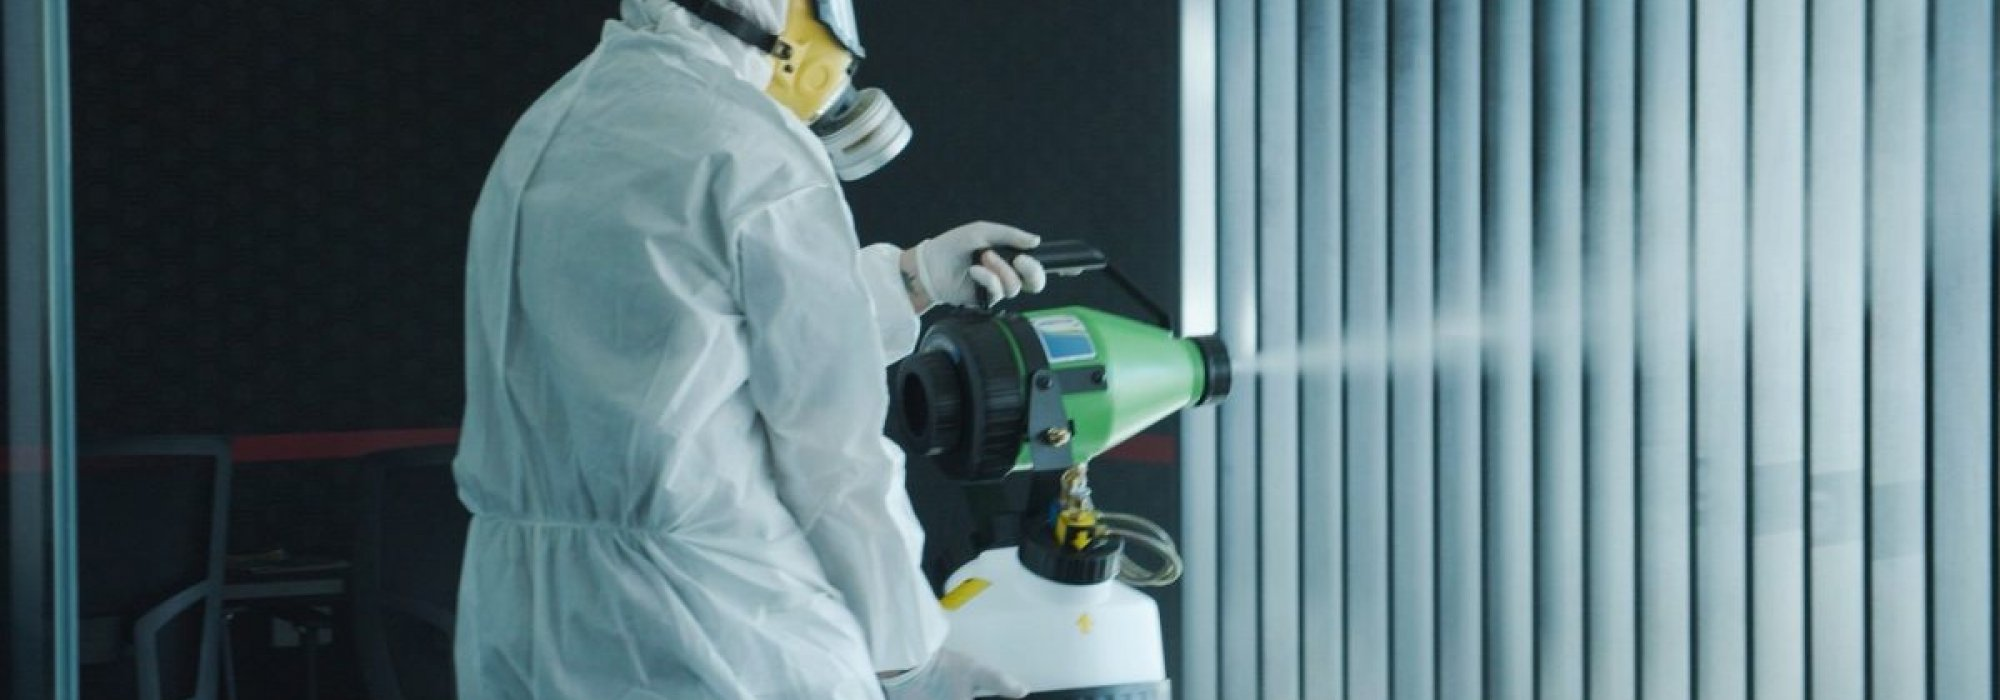 disinfecting services melbourne .jpg